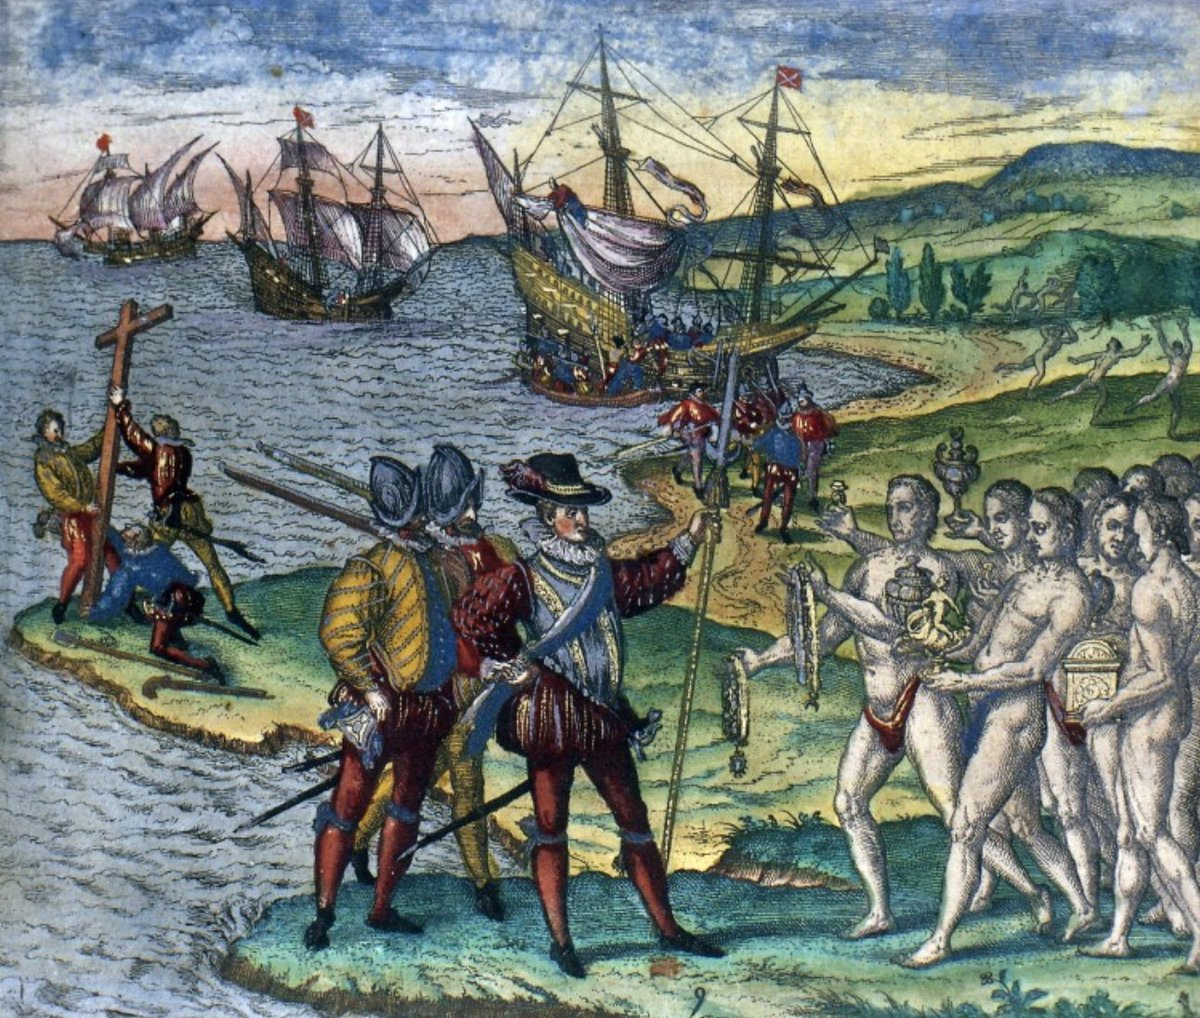 test Twitter Media - In 1502, during his final voyage to the New World, Christopher Columbus experienced his first-ever hurricane off the coast of Hispaniola. Thanks to the stories and skills of the local Taino tribes, he was able to avoid disaster. Read more here:  https://t.co/qmFr9TvTrD #NWS150 https://t.co/FQa6VPR6wL